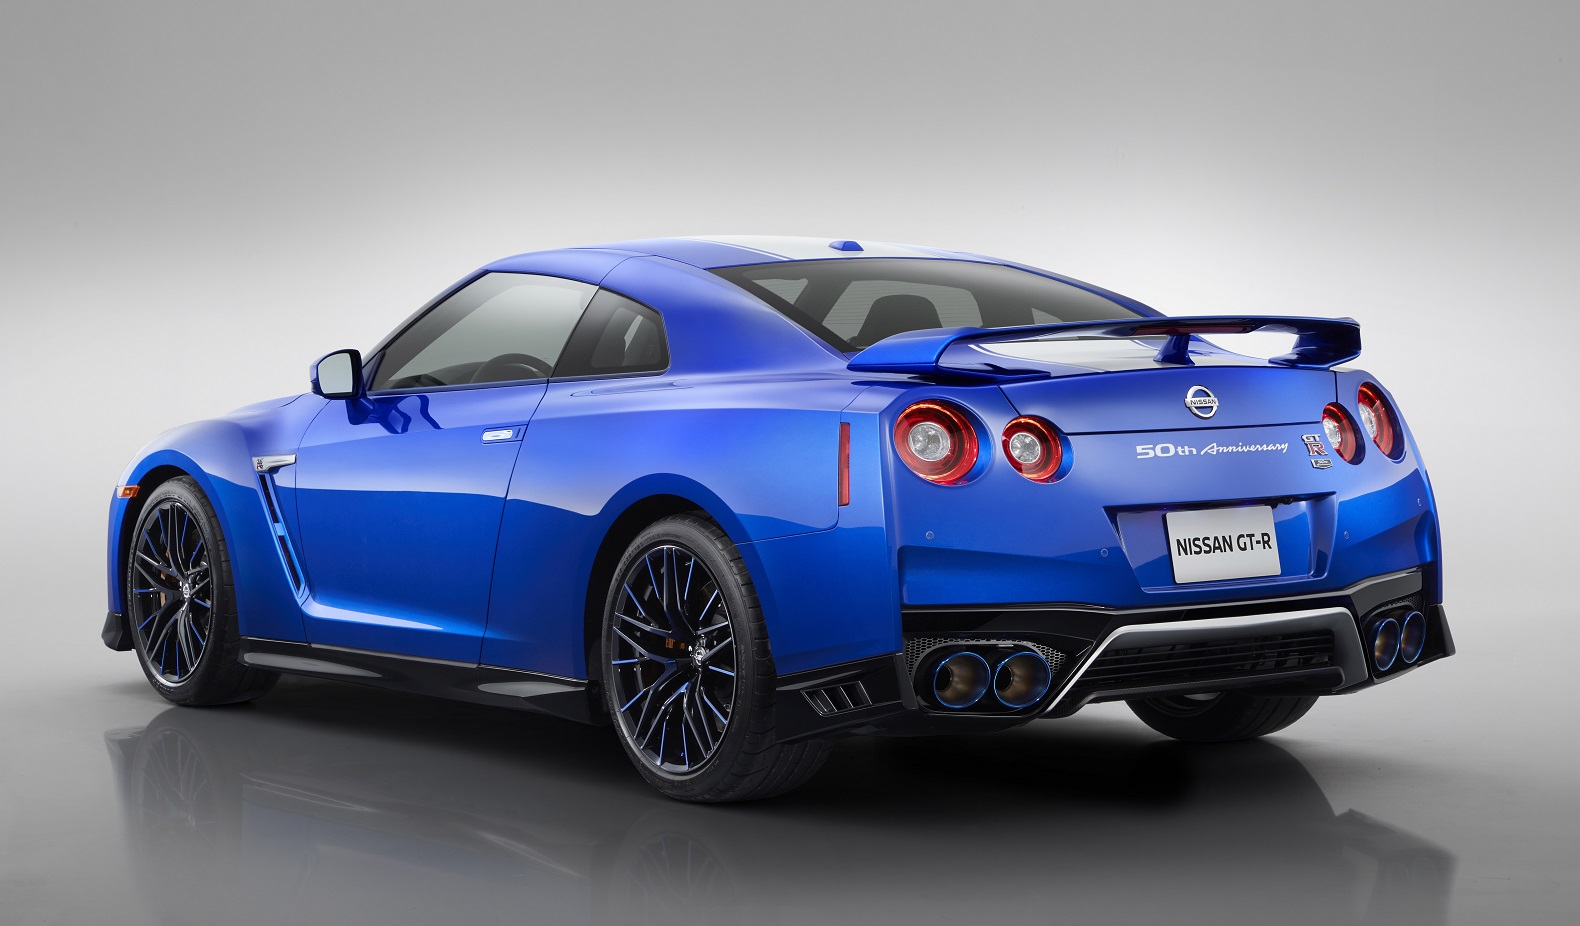 2020 Nissan GT-R starts at $115,235 | The Torque Report